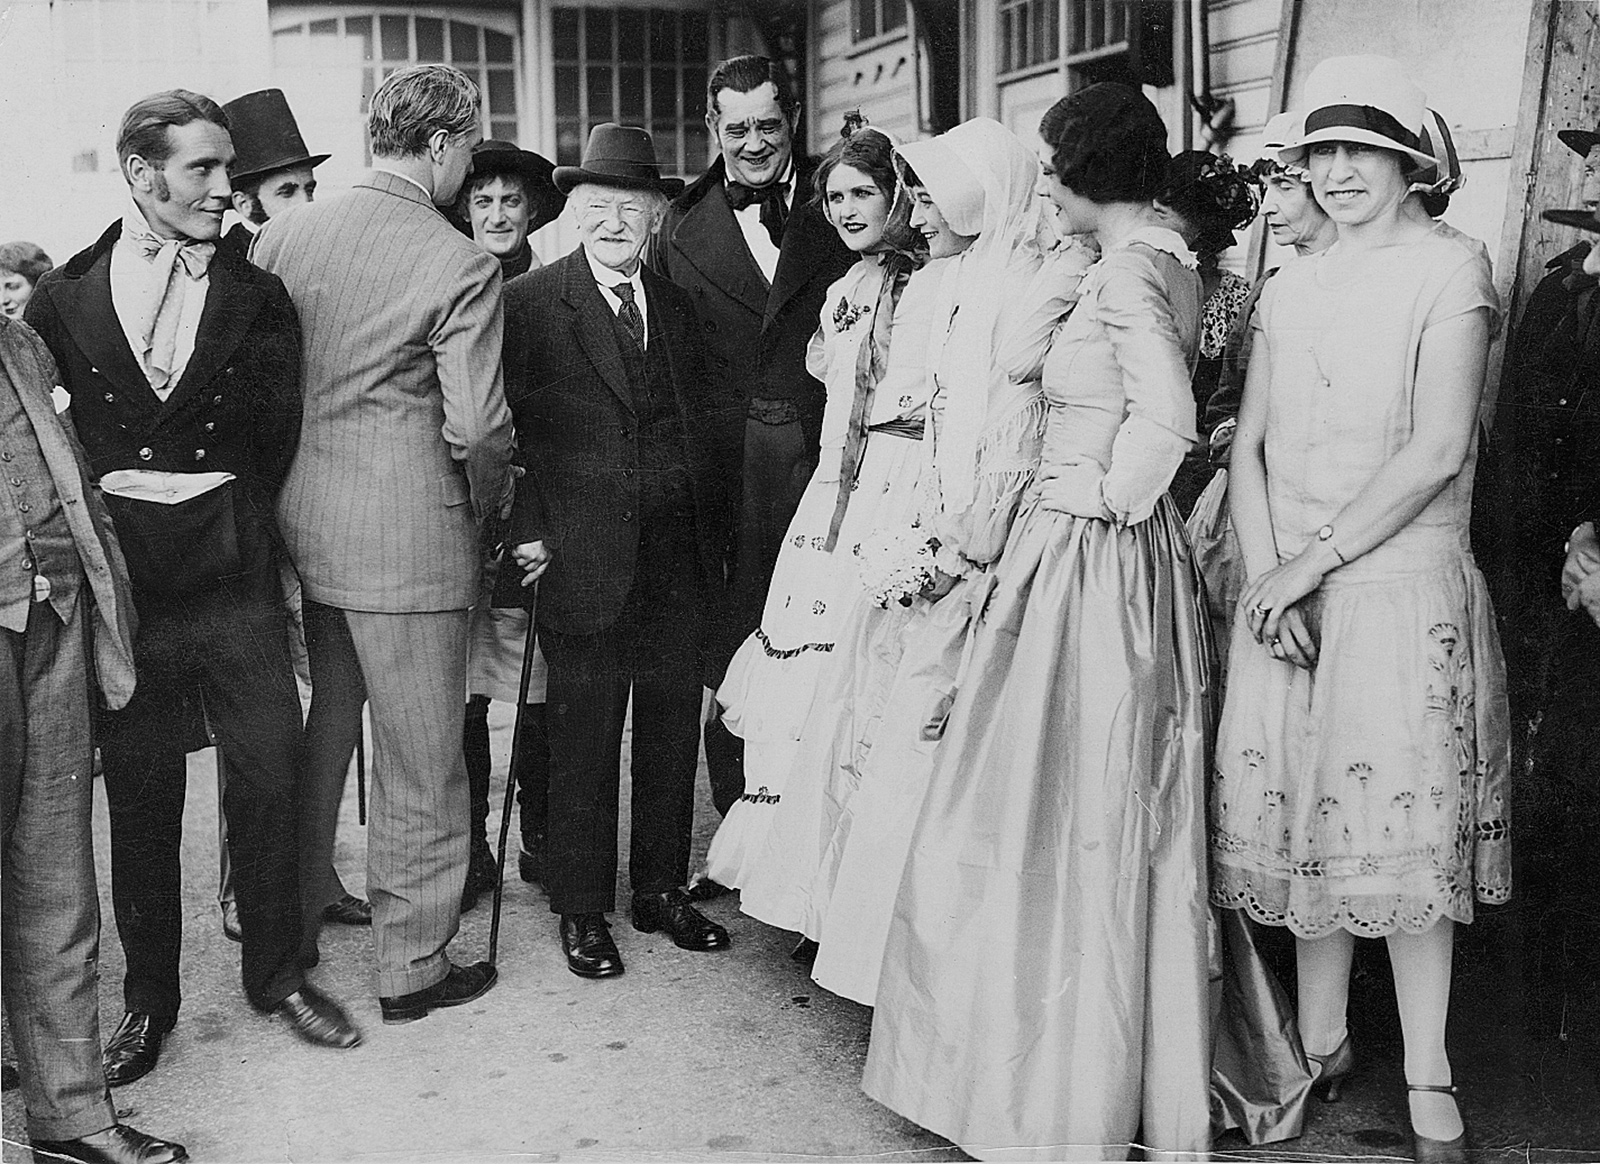 Thomas Hardy with members of the Barnes Theatre Company's production of The Mayor of Casterbridge, Weymouth, Dorset, 1926